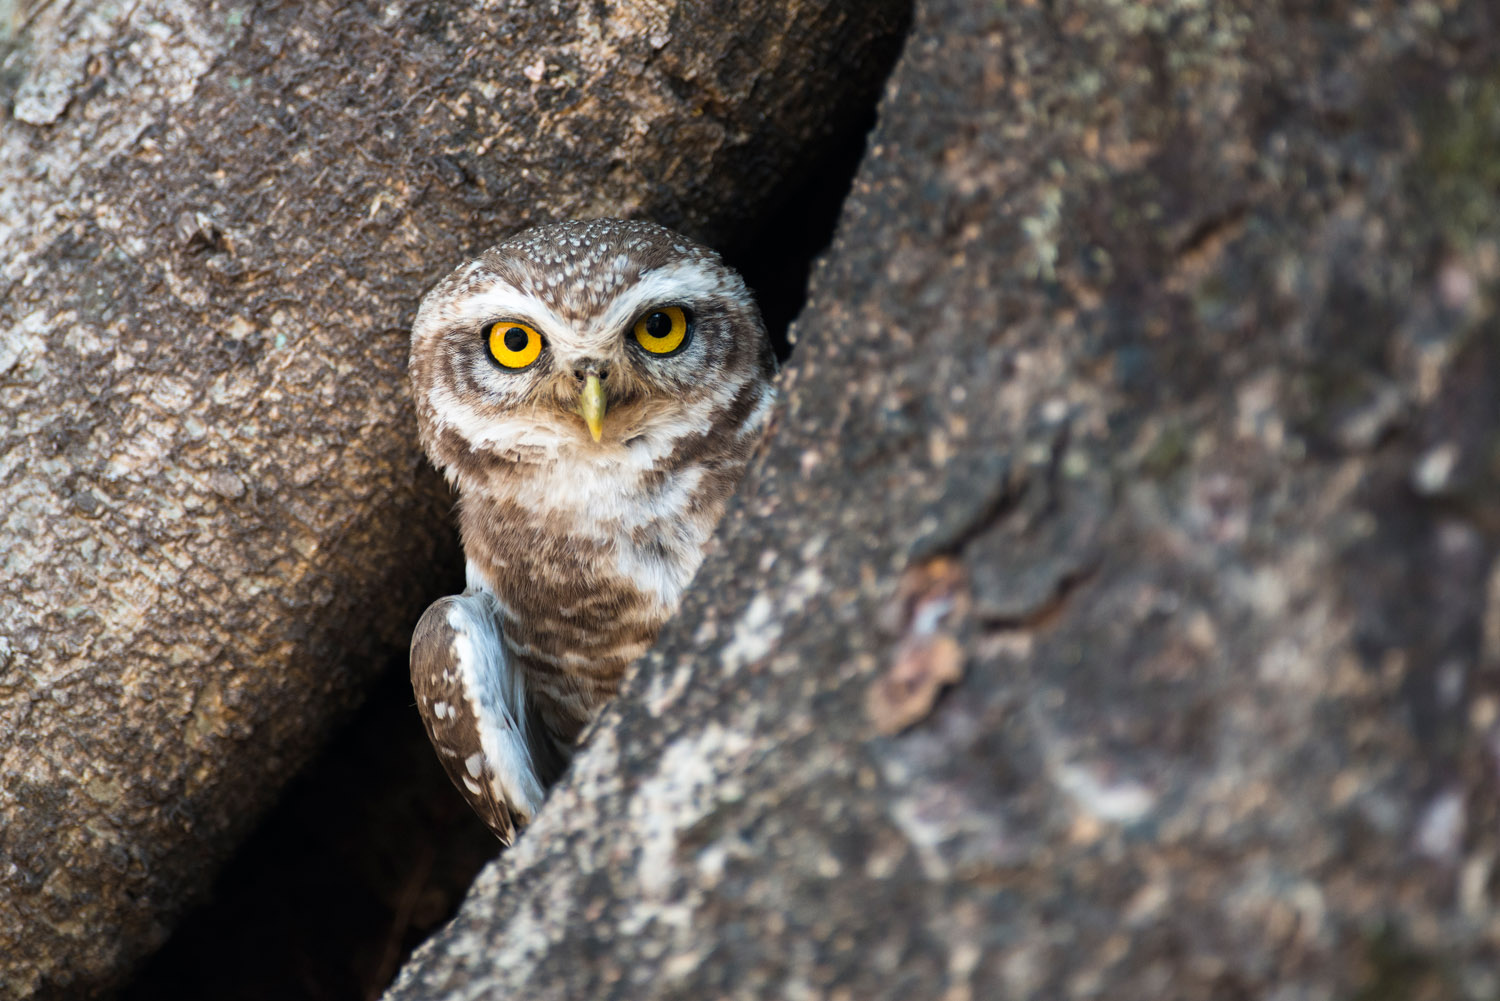 Spotted owlet in Indian banyan tree hollow, Bandhavgarh National Park, Madhya Pradesh, India